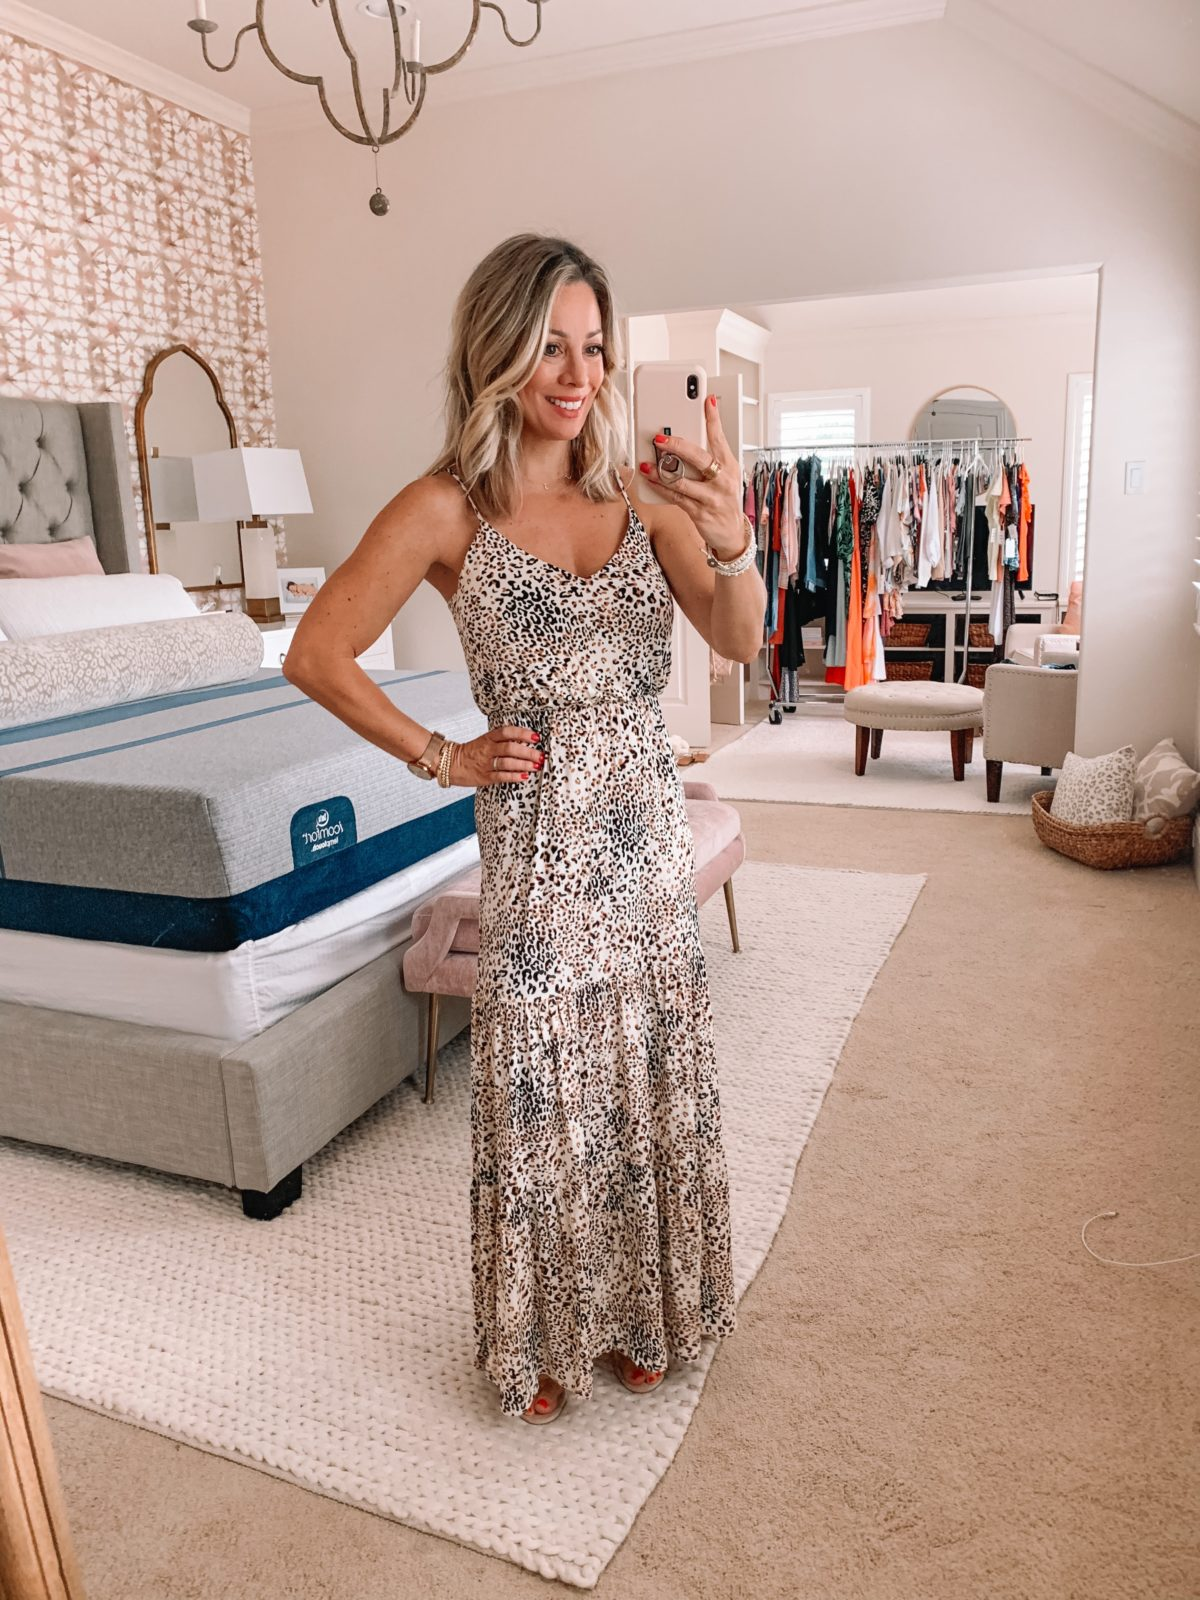 Dressing Room Finds Nordstrom and Target, Leopard Print Maxi